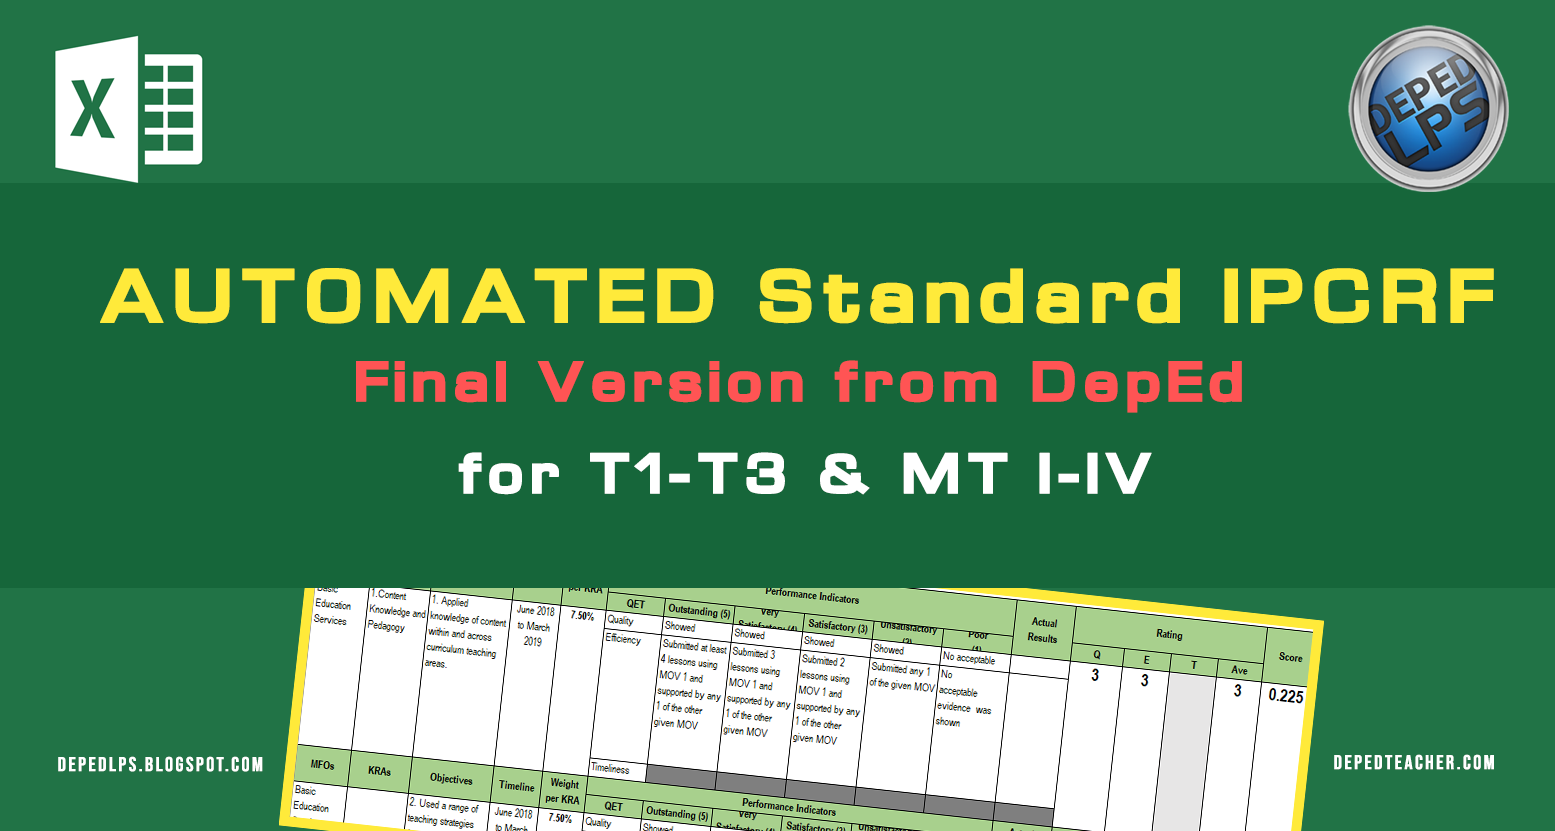 Standard Automated IPCRF Final Version from DepEd for Teachers